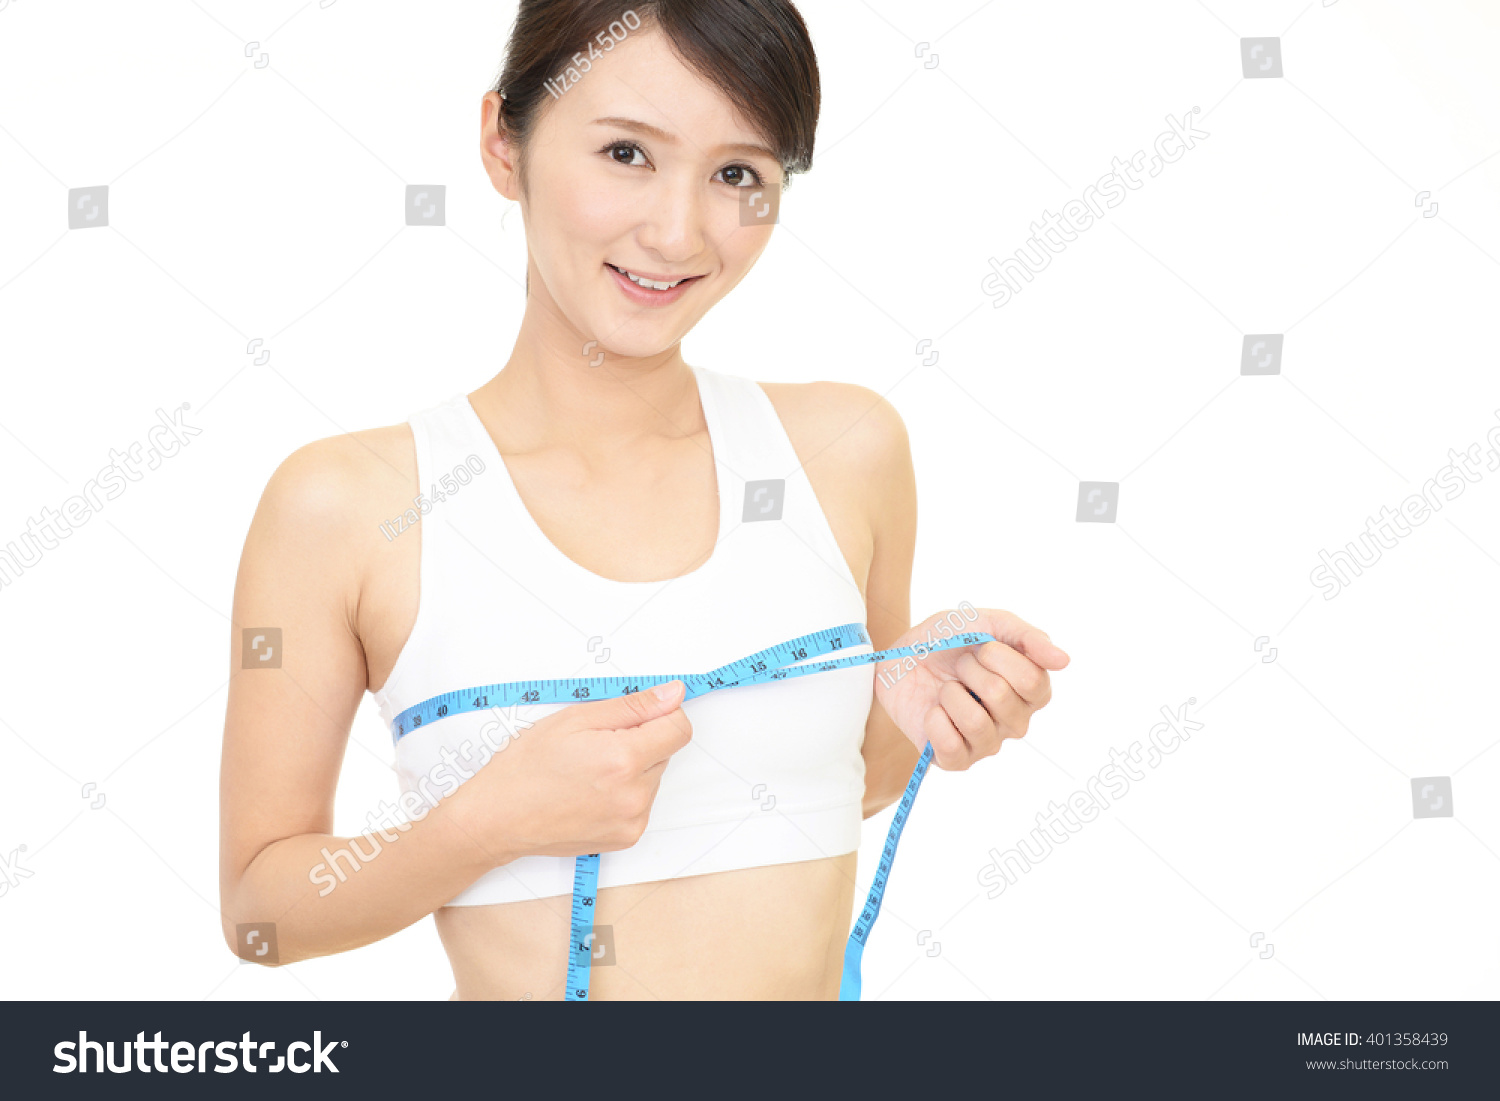 Young Woman Measuring Her Breast Stock Photo 401358439  Shutterstock-8835